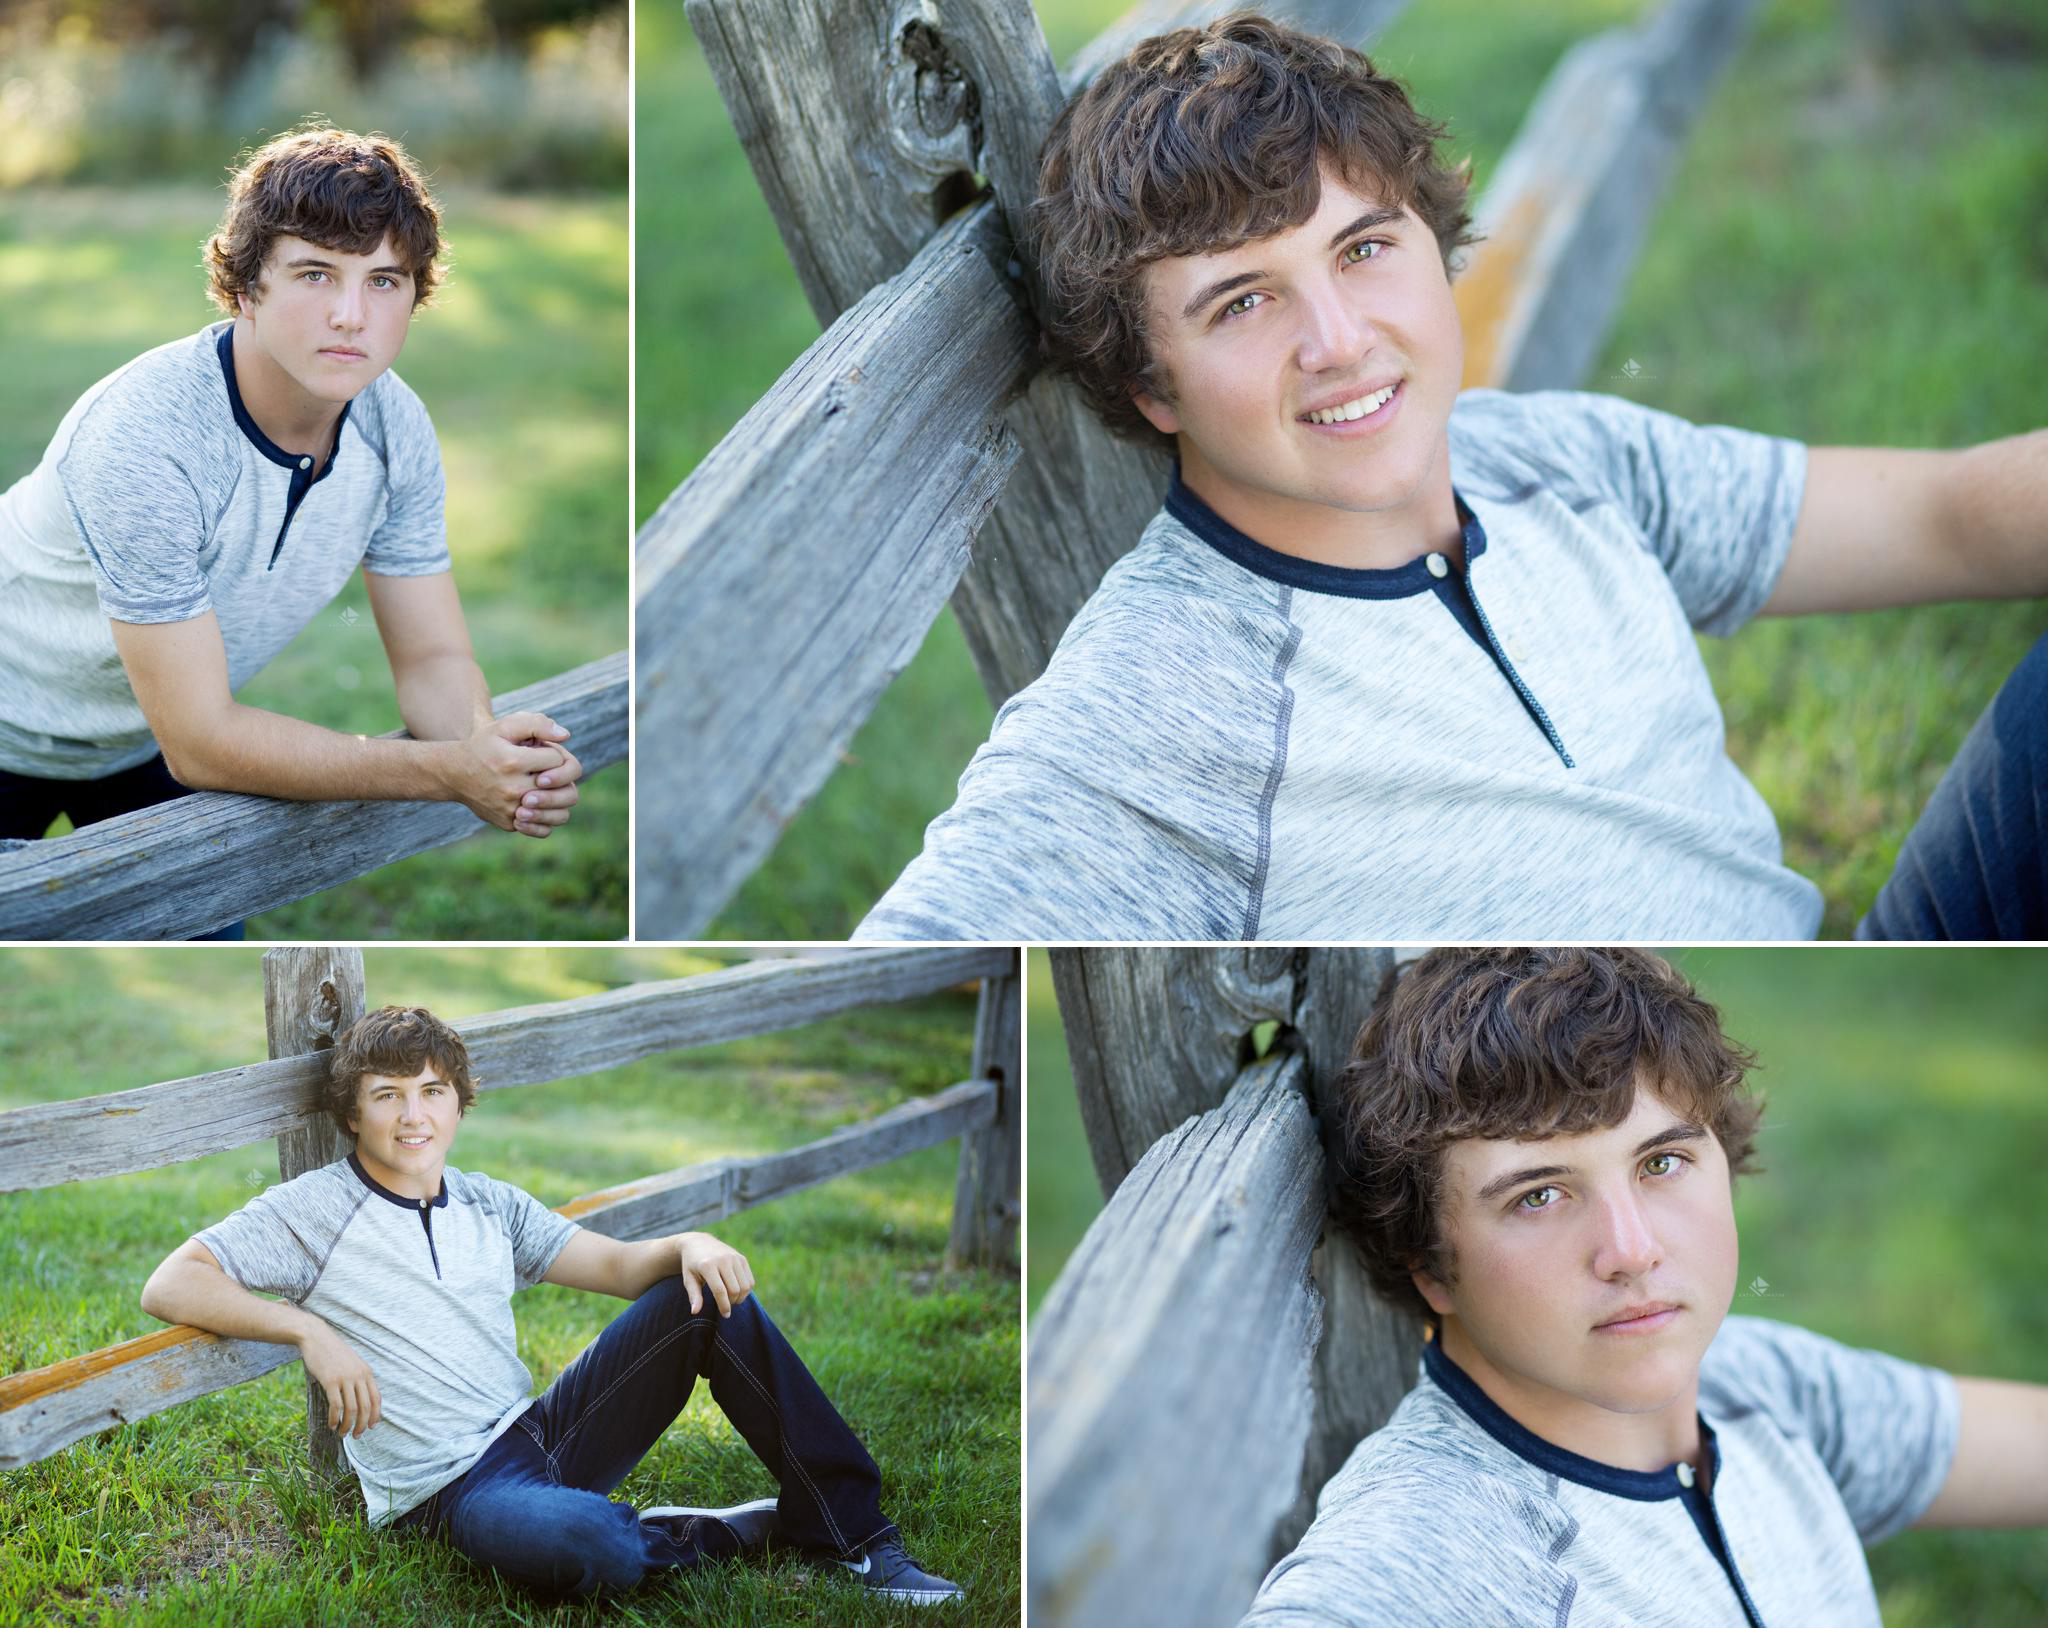 brunette senior boy in a gray baseball tee sitting next to a wooden fence in green grass